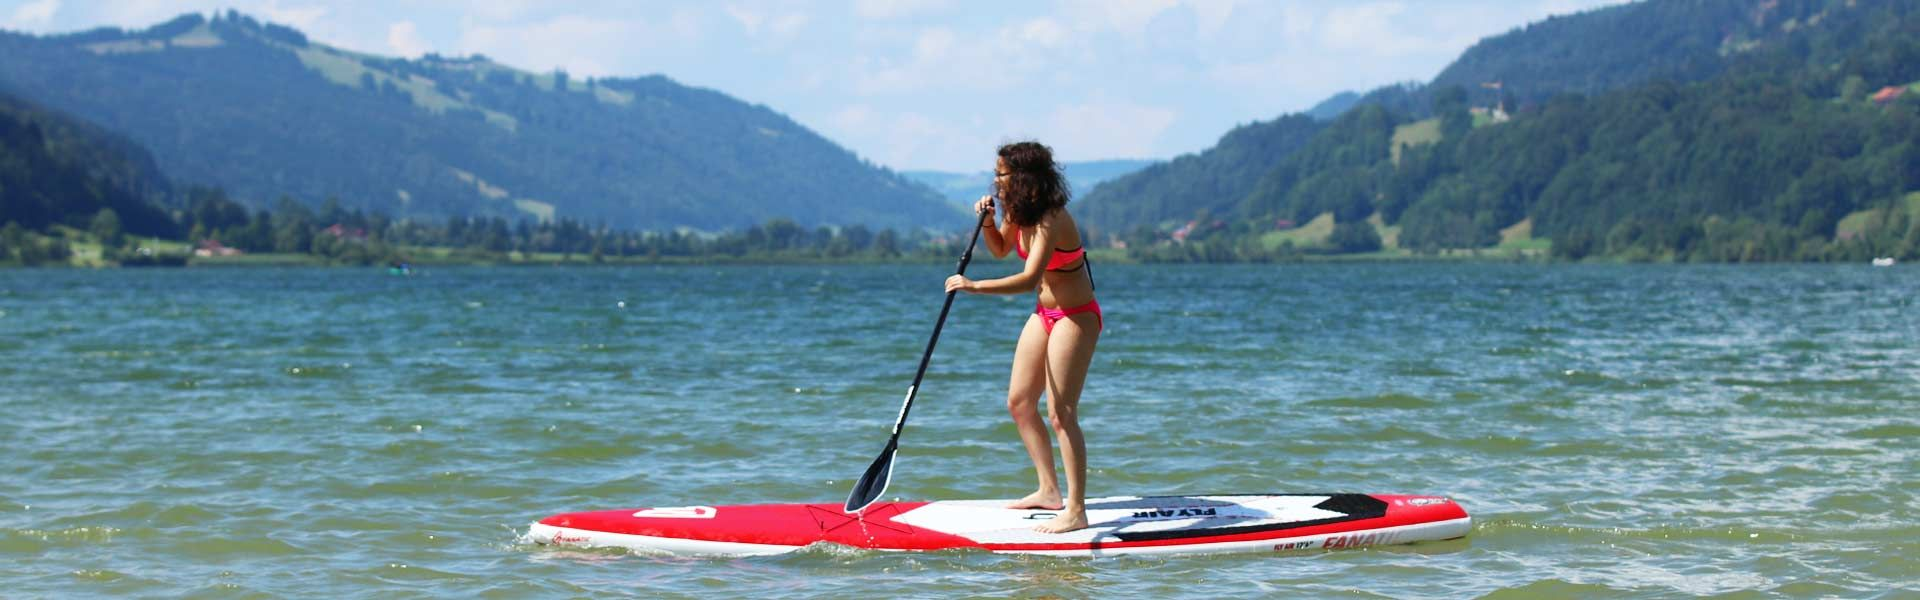 Spaß beim Stand Up Paddling